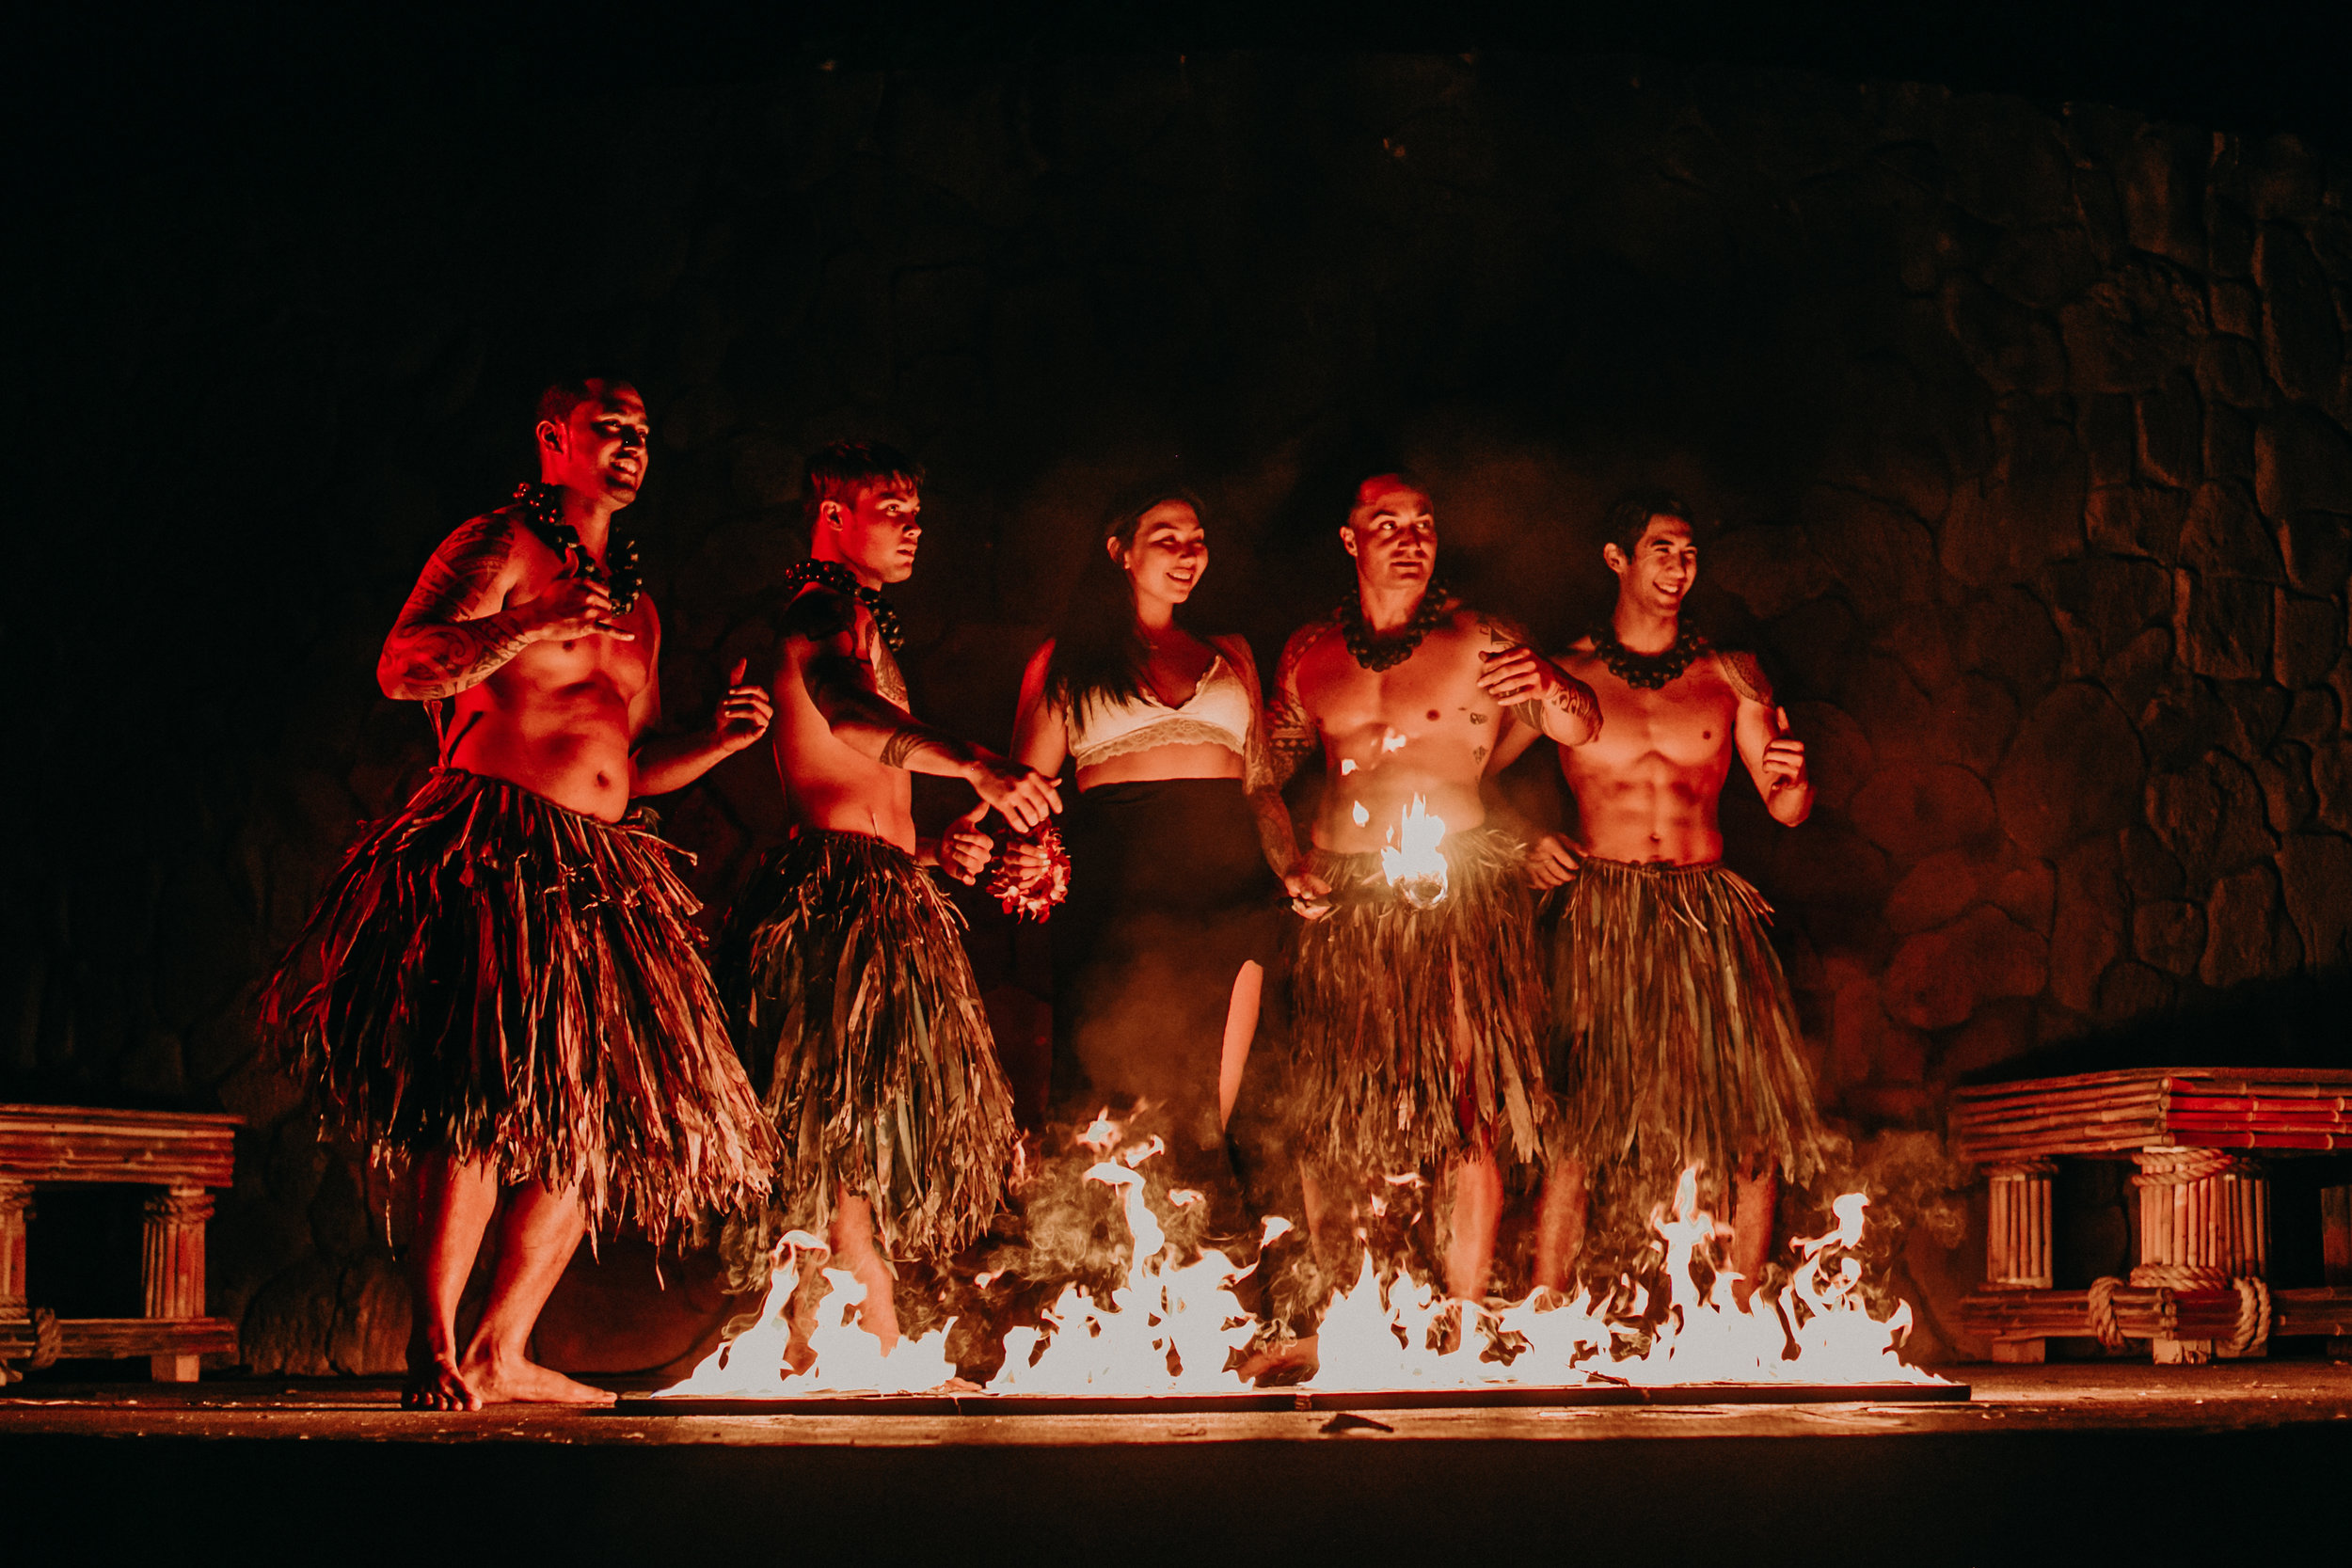 The Grand Luau at Honua'lua after dark show